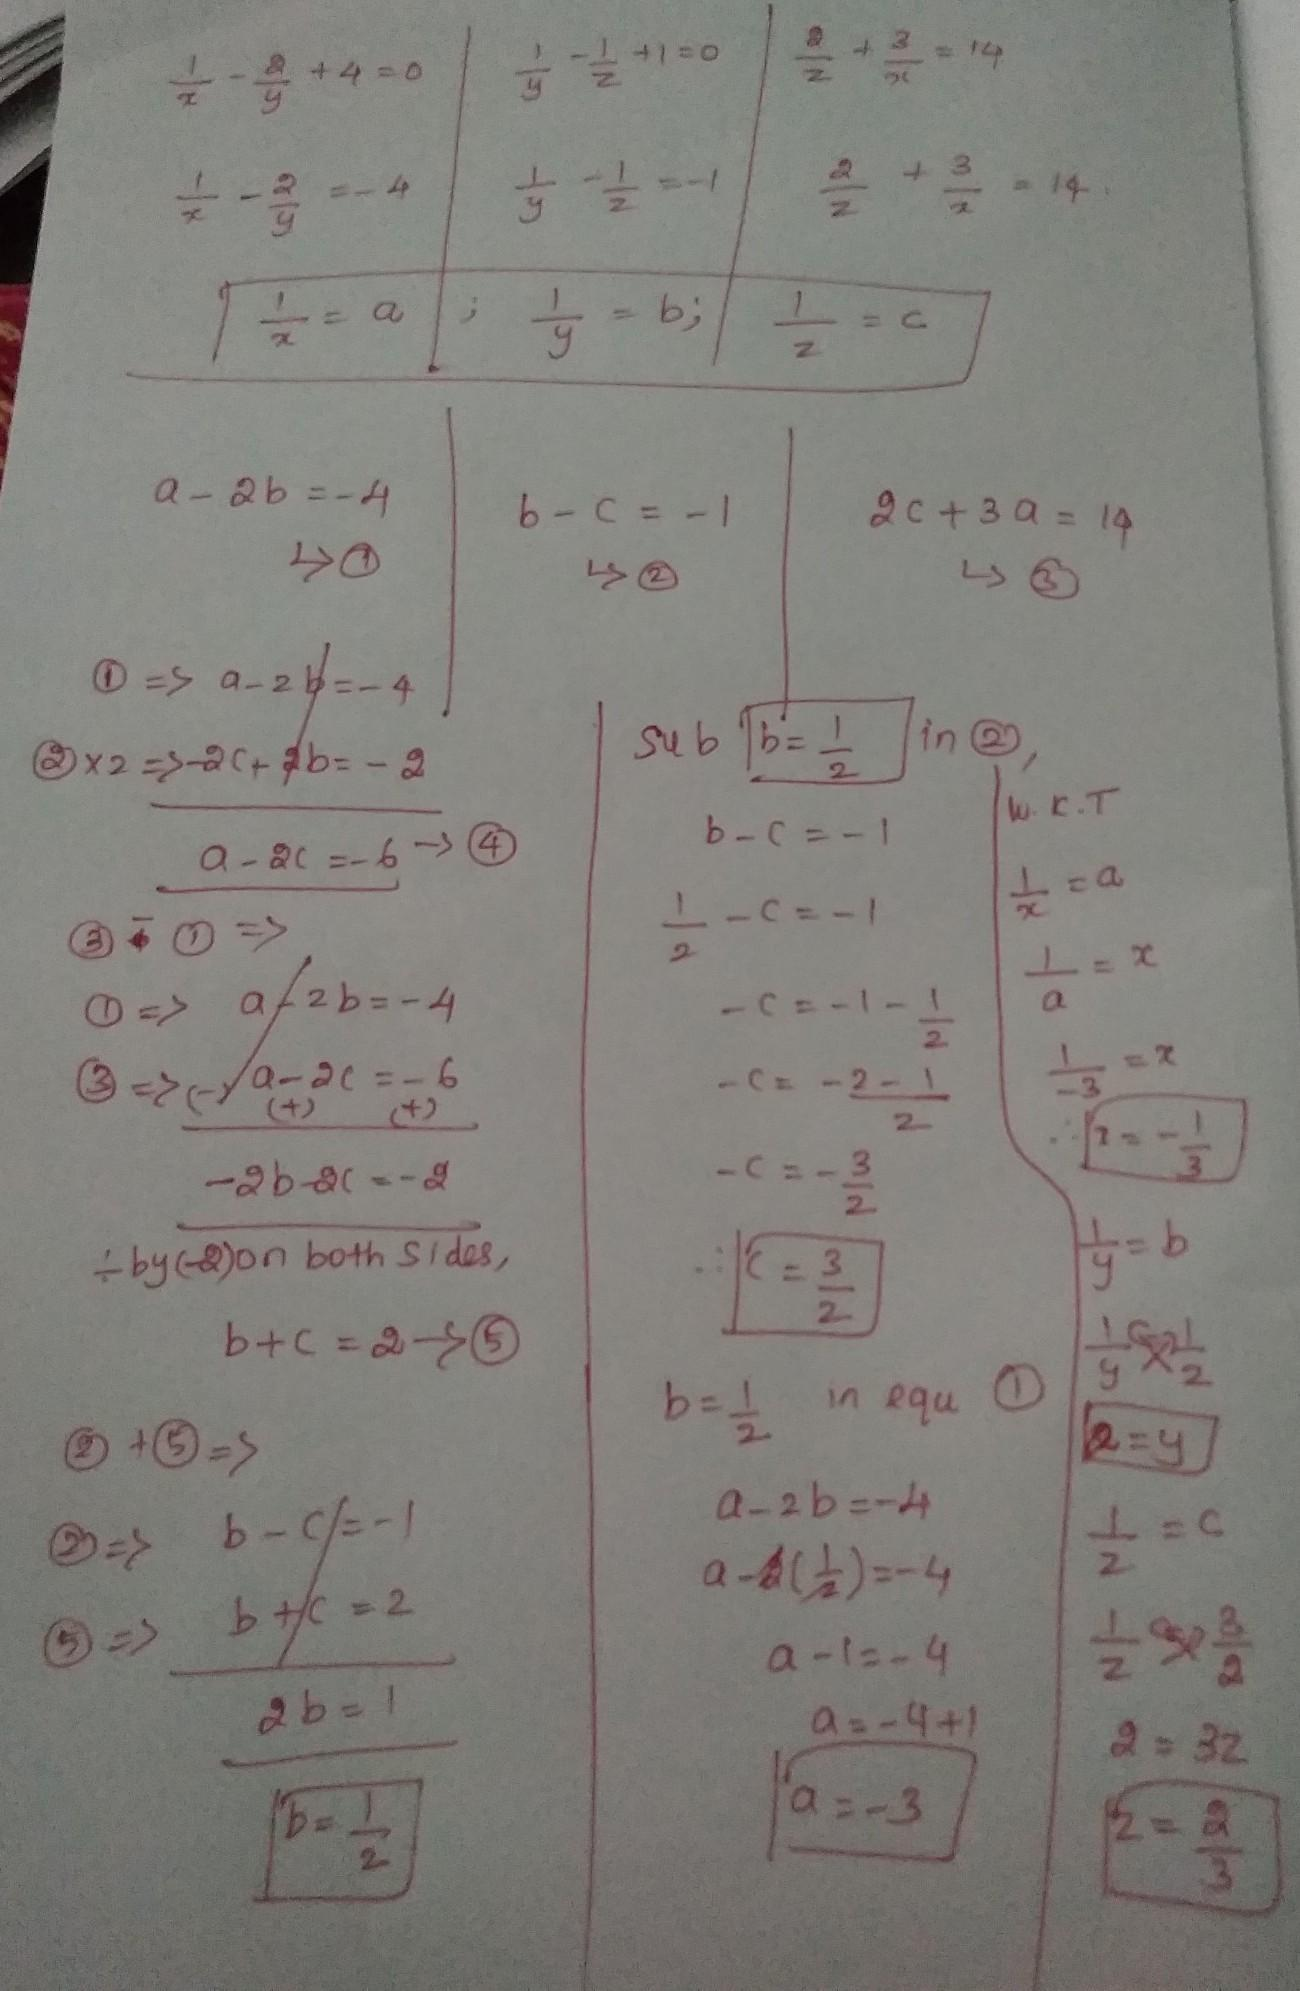 1 X 2 Y 4 0 1 Y 1 Z 1 0 2 Z 3 X 14 Solve This Linear Equation In Three Variables Brainly In